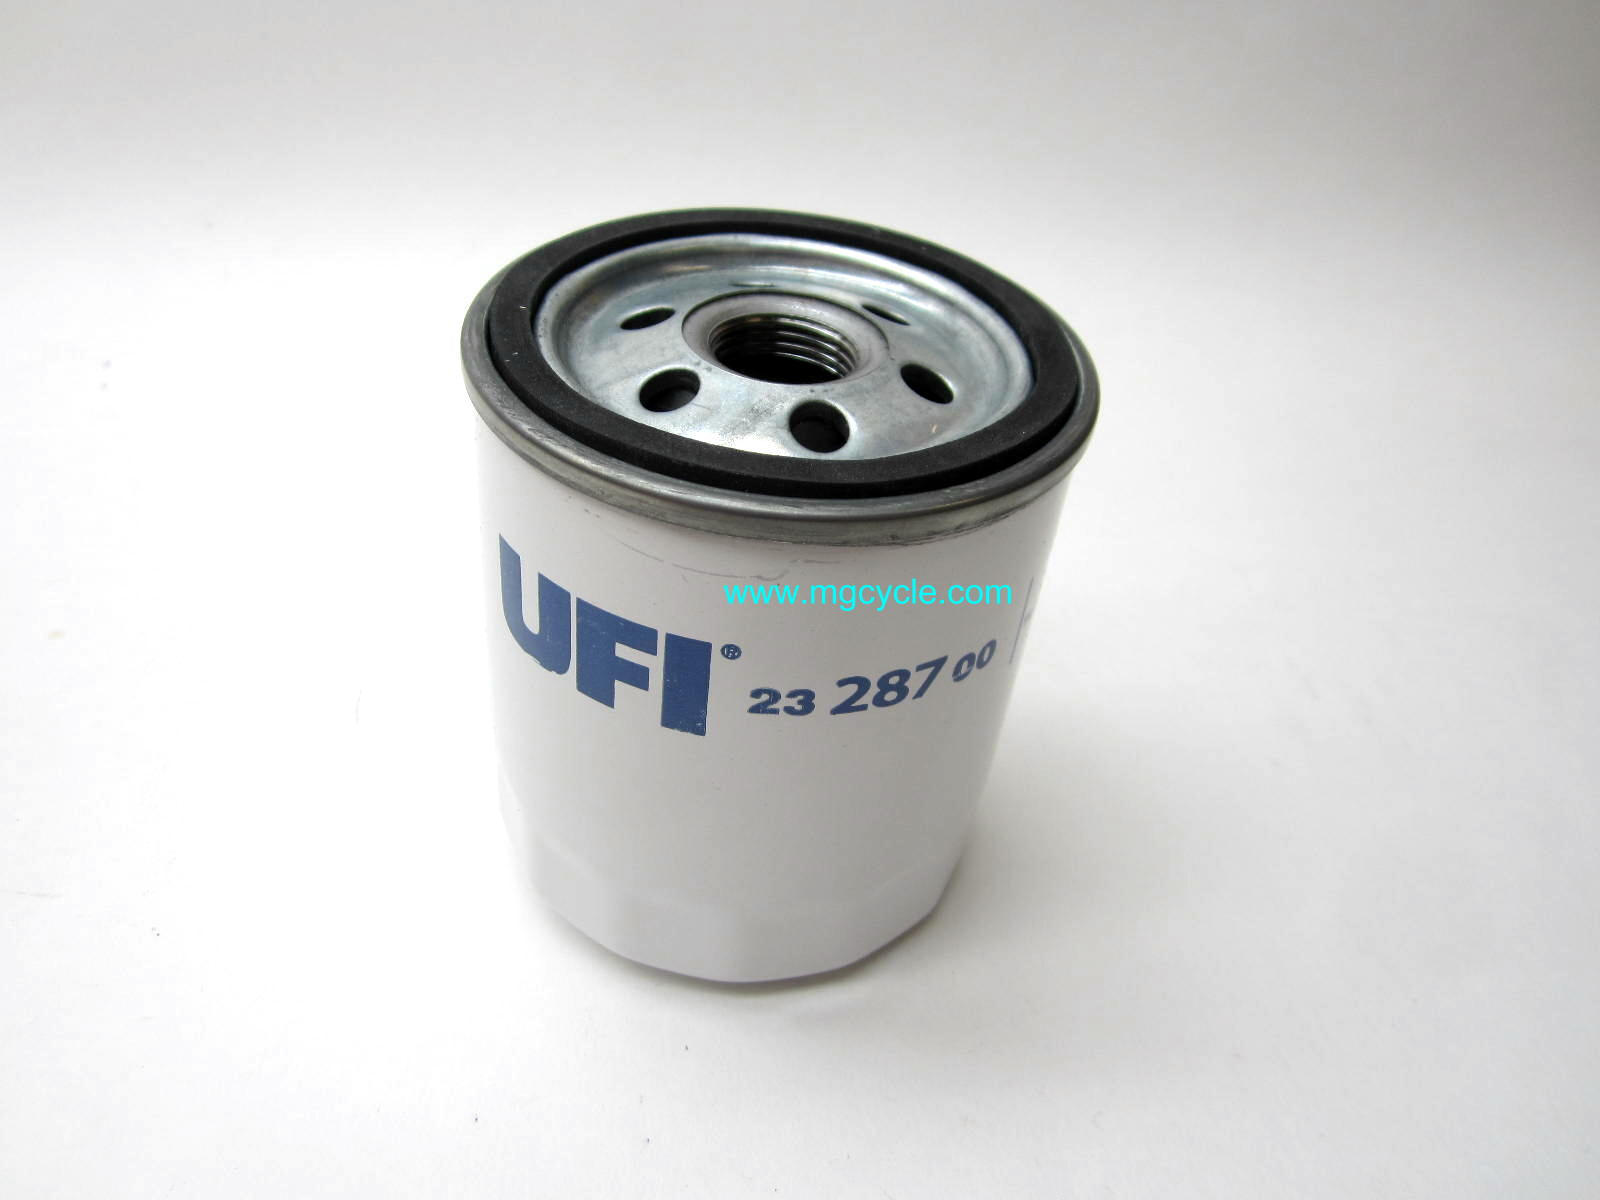 UFI 23 287 00 oil filter 1100/1200 Guzzis 1994 - 2016 GU30153000